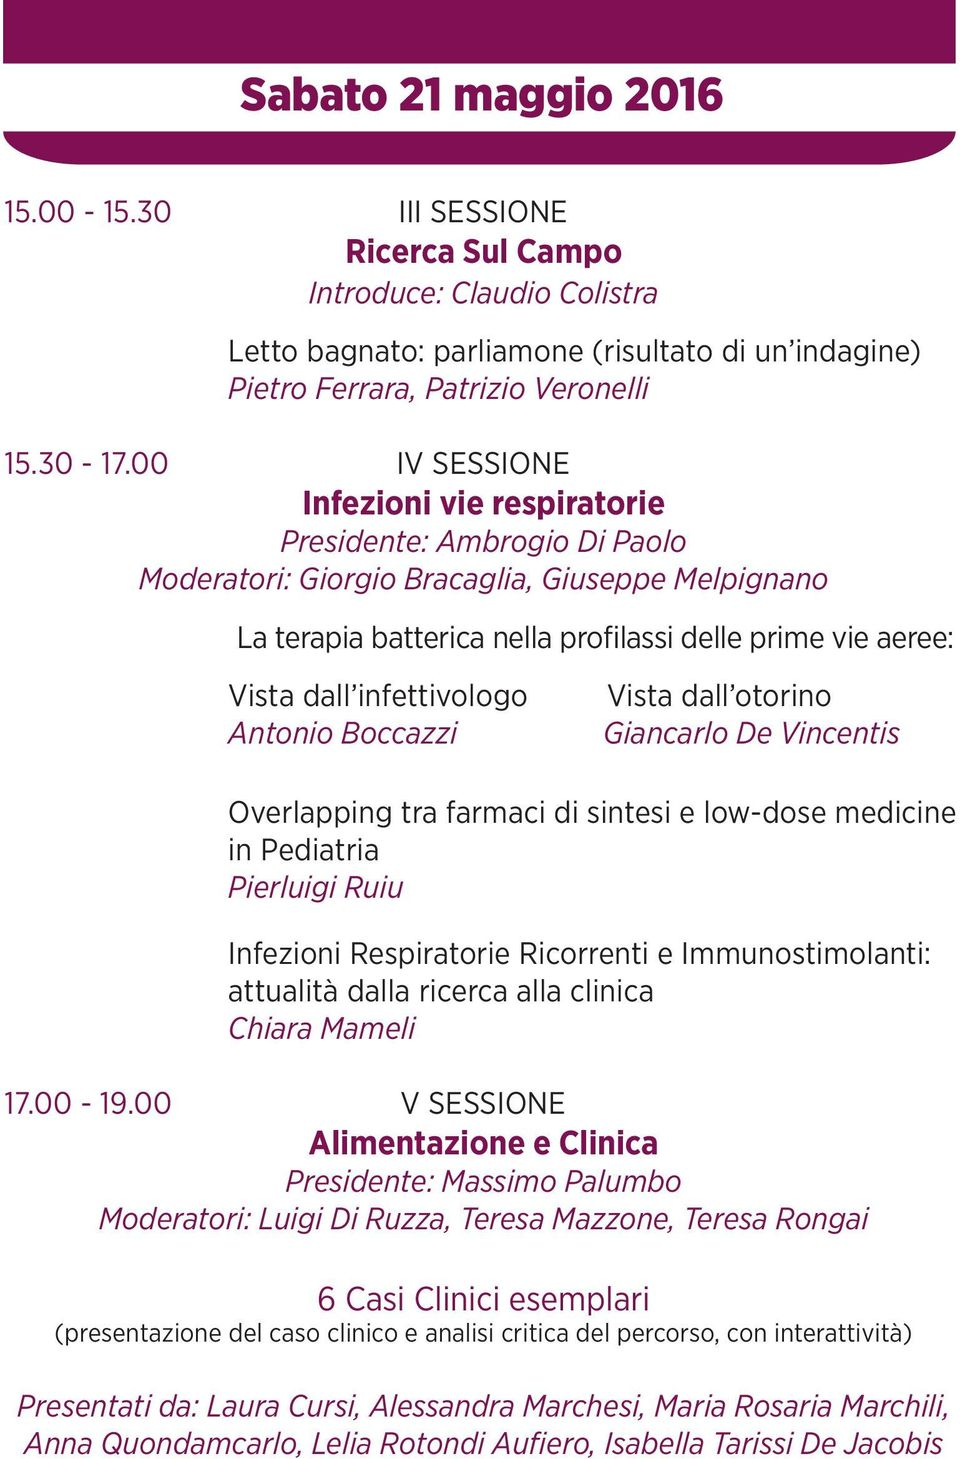 infettivologo Antonio Boccazzi Vista dall otorino Giancarlo De Vincentis Overlapping tra farmaci di sintesi e low-dose medicine in Pediatria Pierluigi Ruiu Infezioni Respiratorie Ricorrenti e